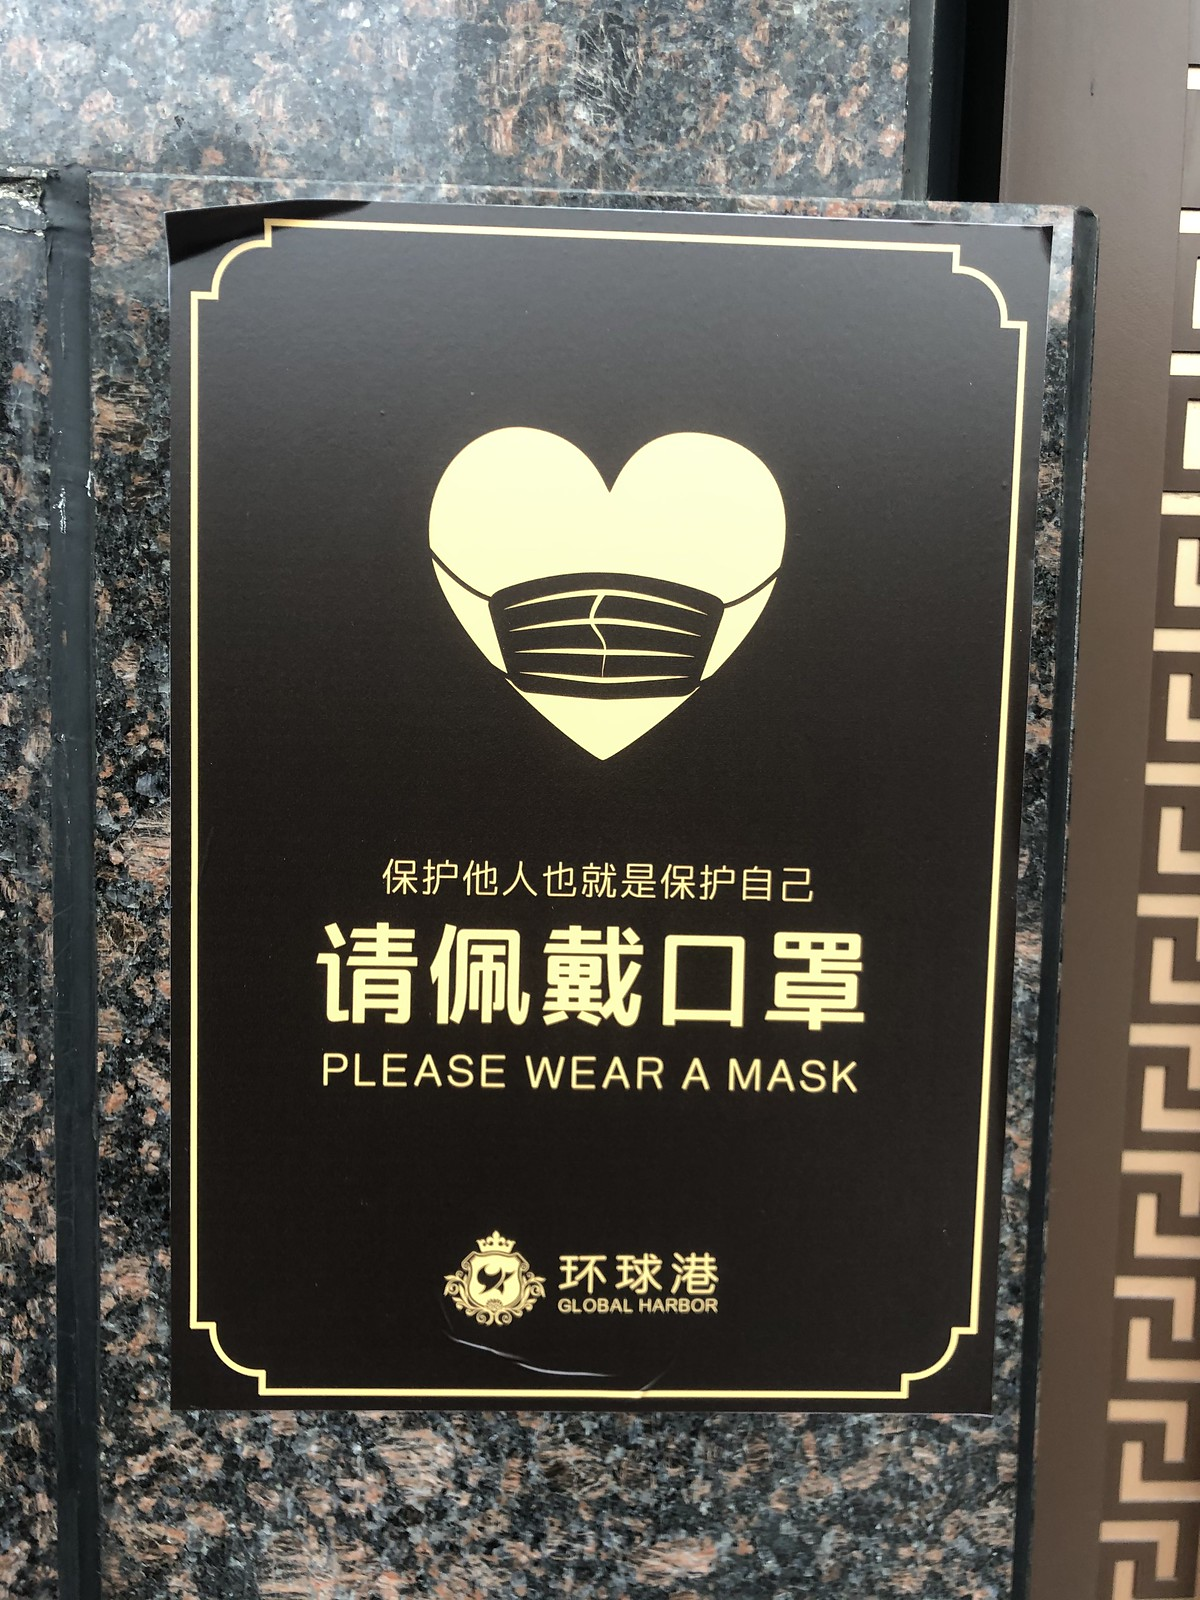 COVID-19 Mall Mask Requirement